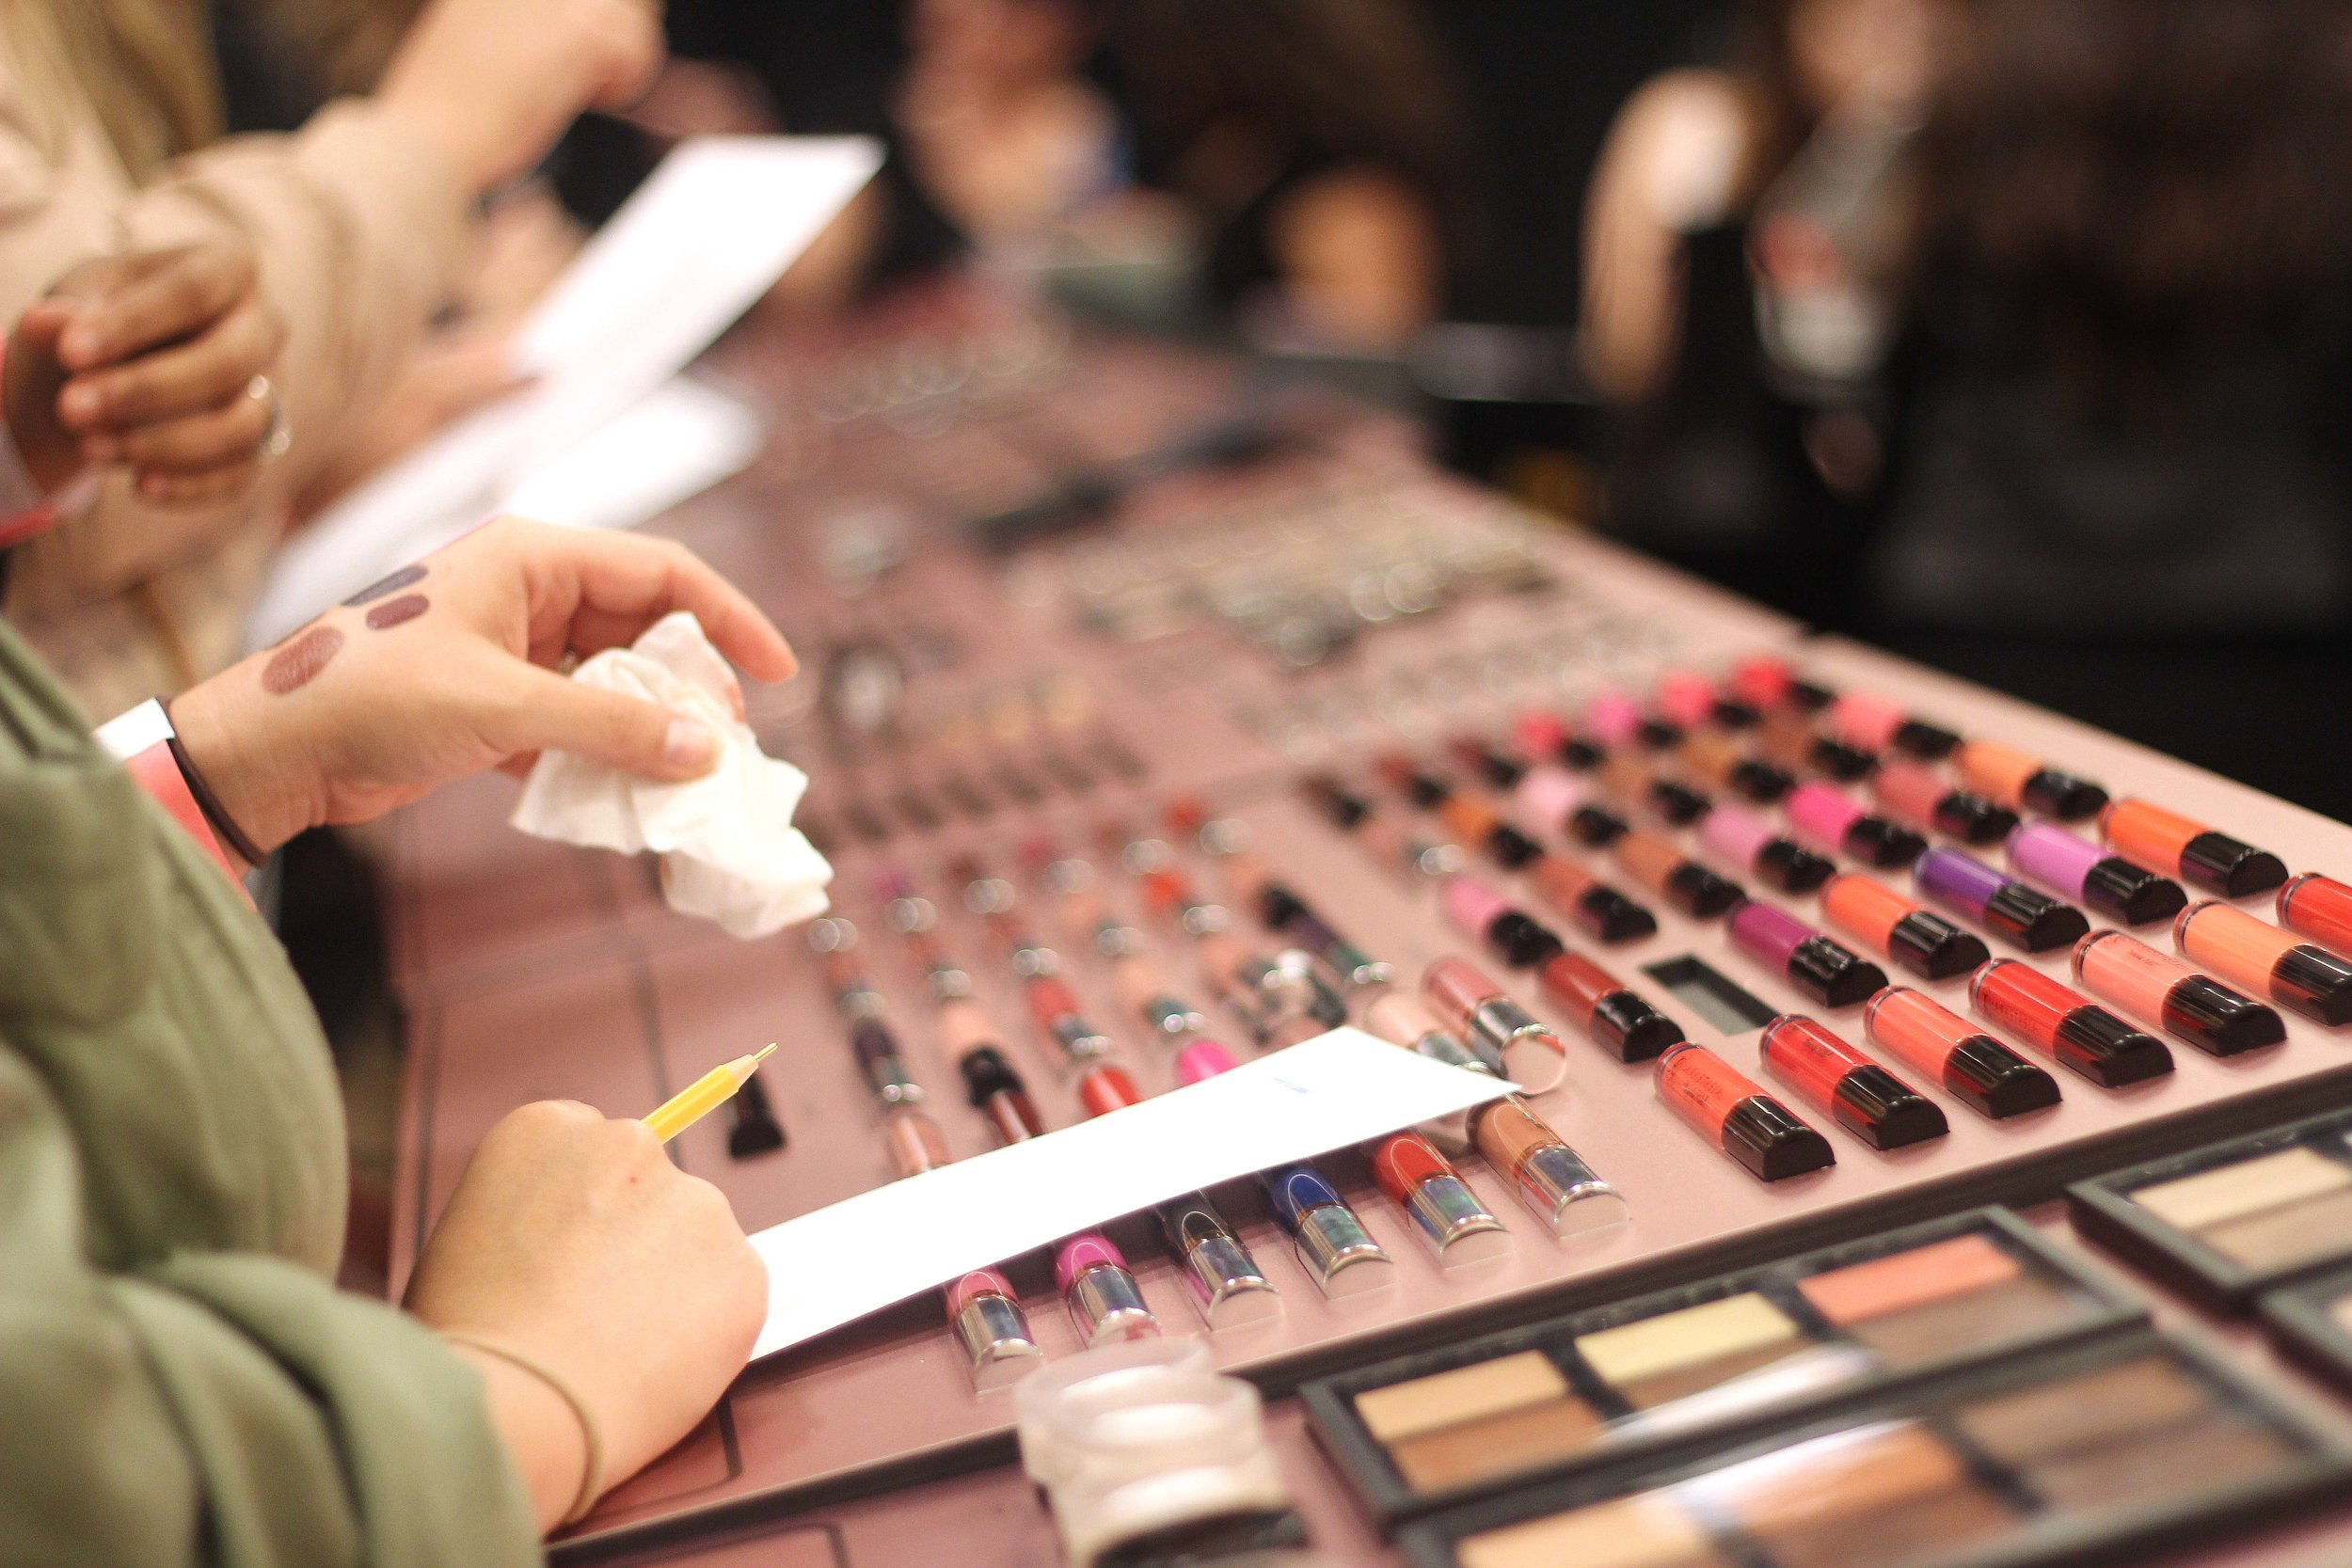 Attendees swatching liquid lipsticks at the Anastasia Beverly Hills booth.